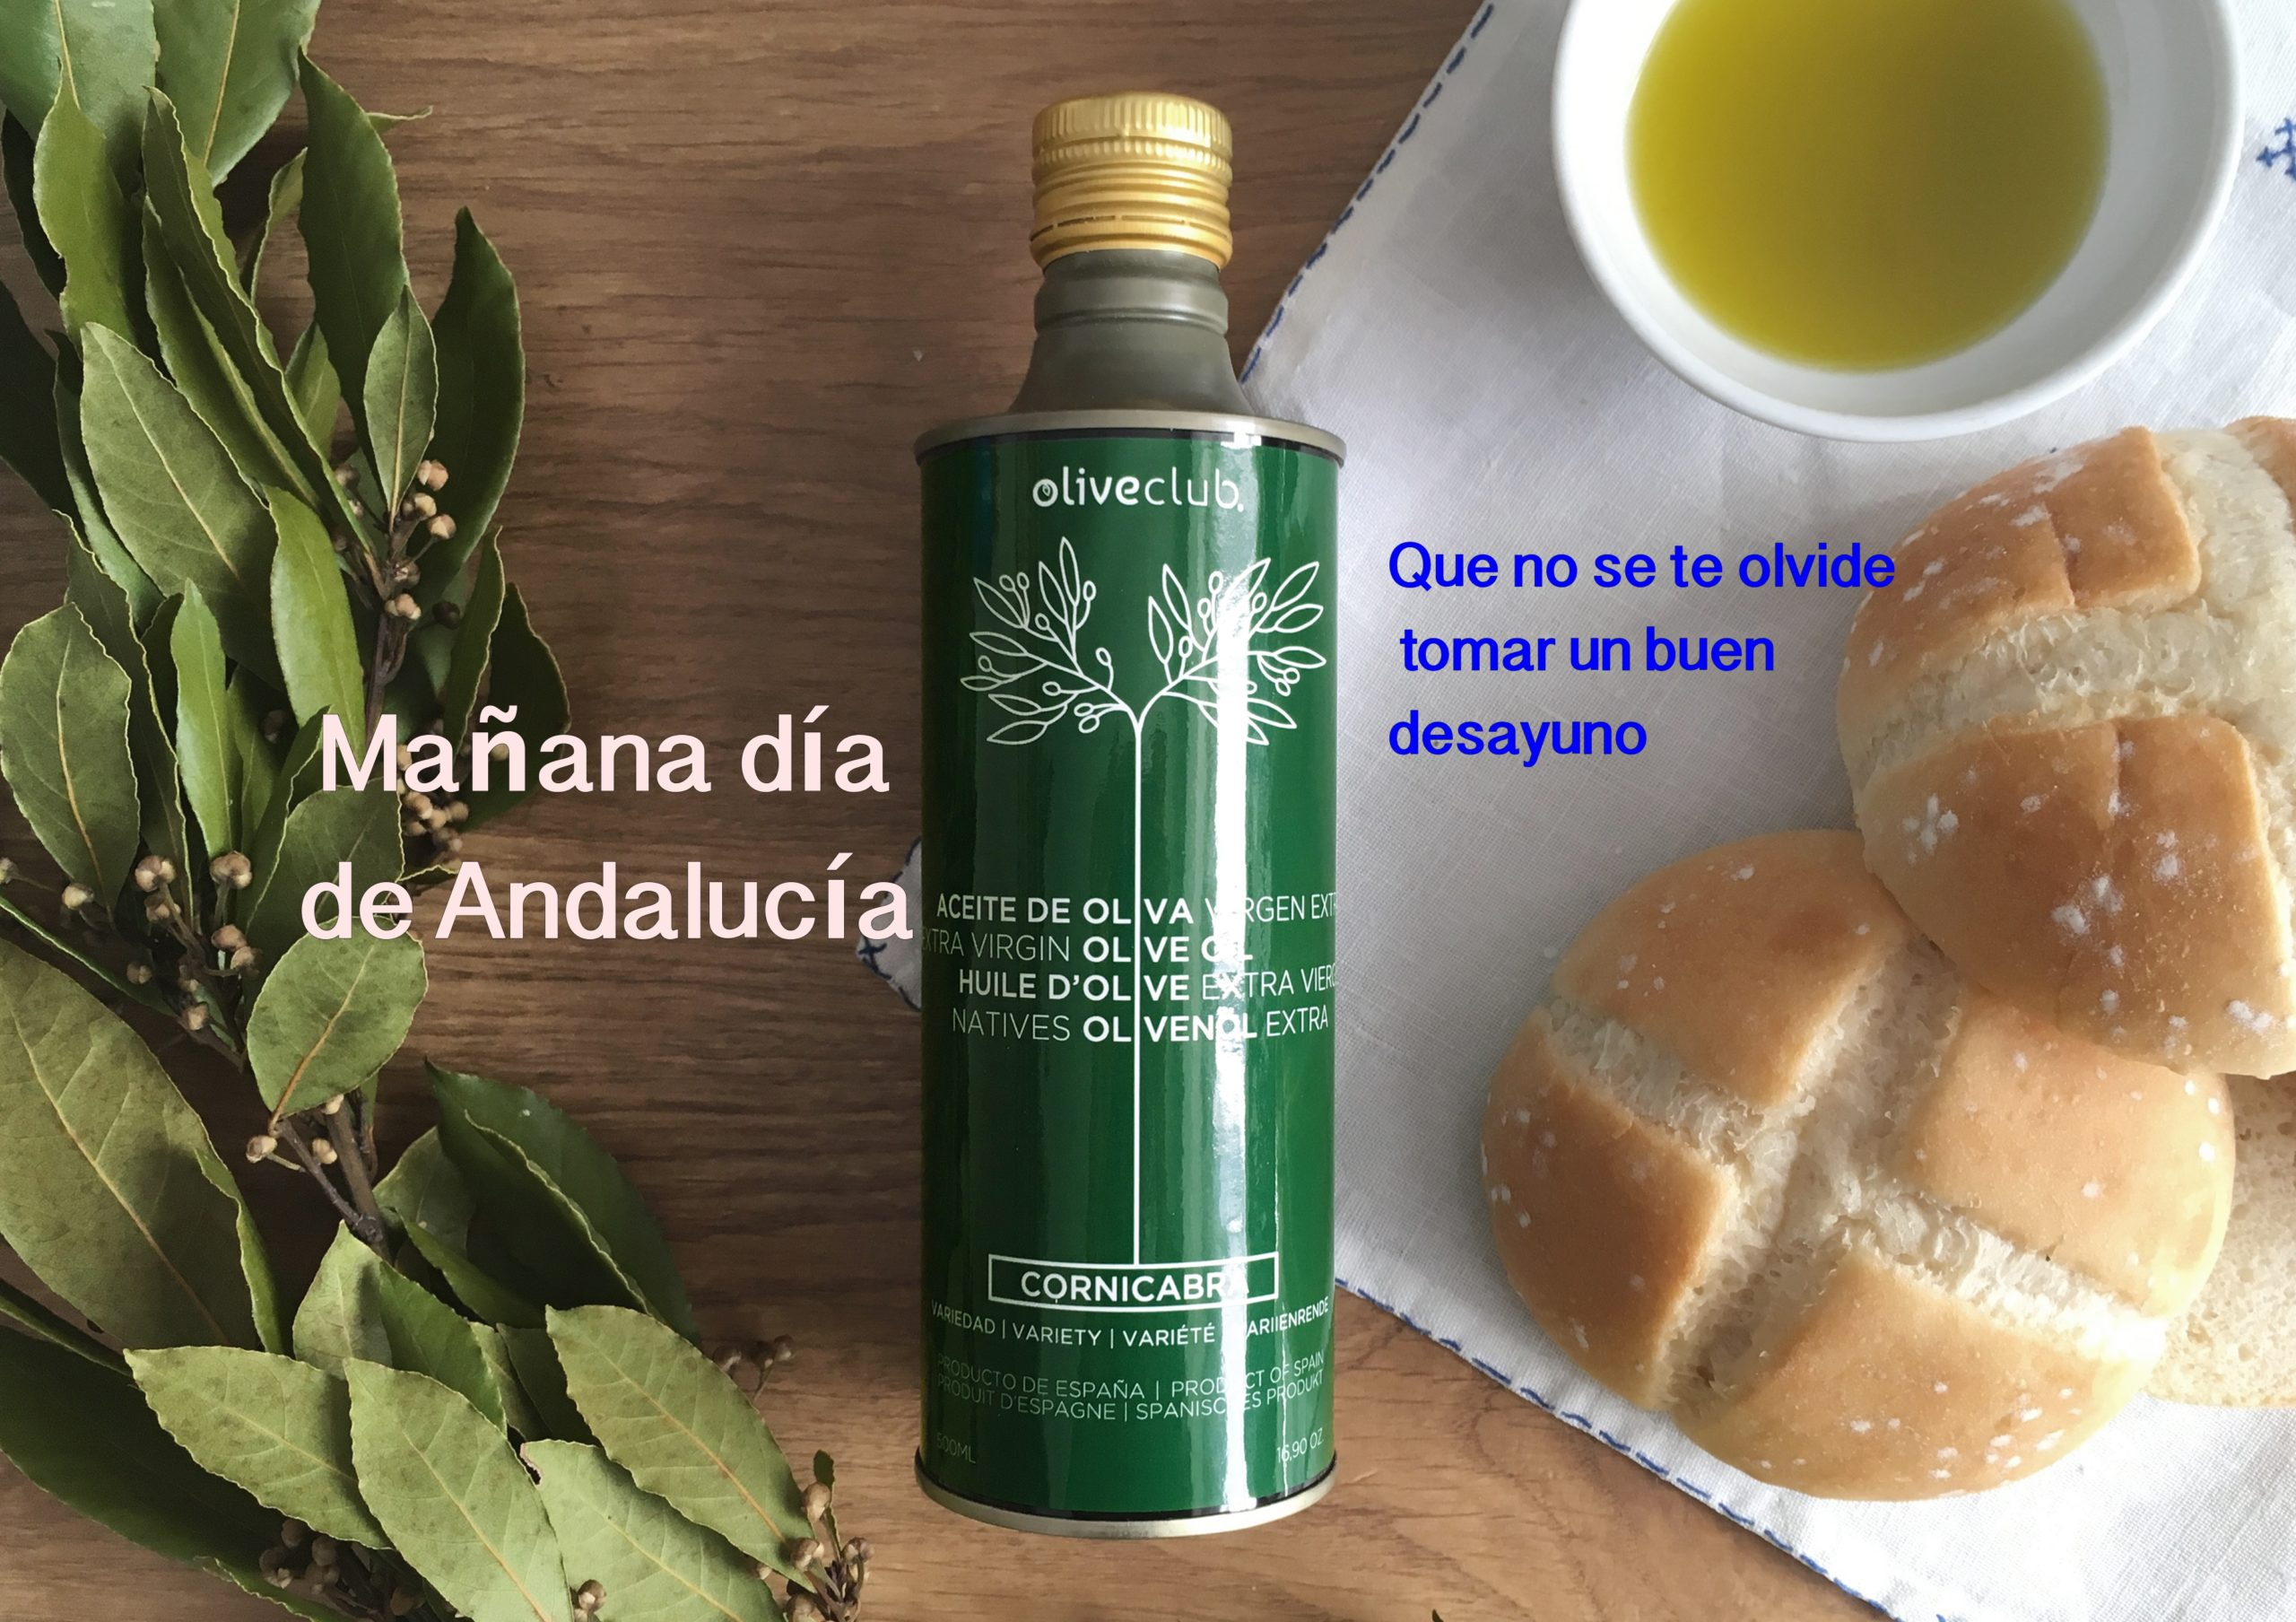 Oliveclub